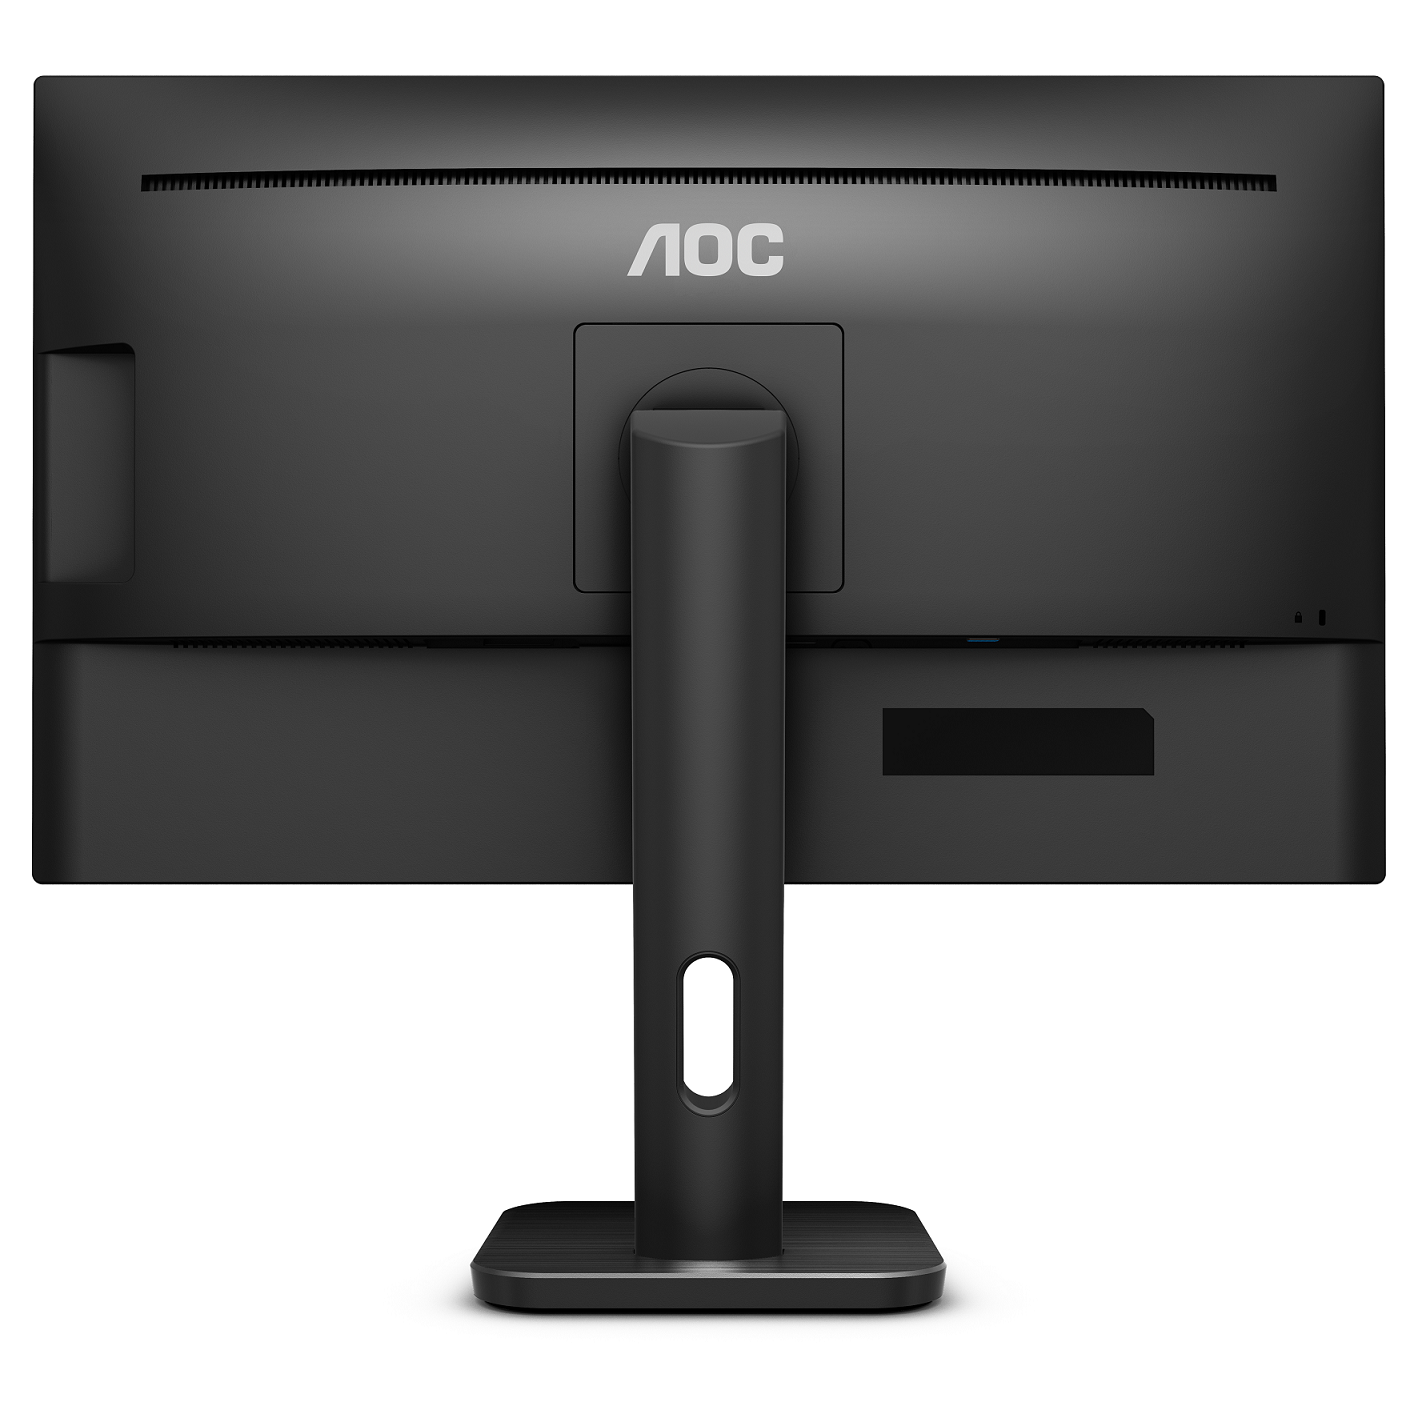 aoc-pro-line-27p1-black-back-monitor